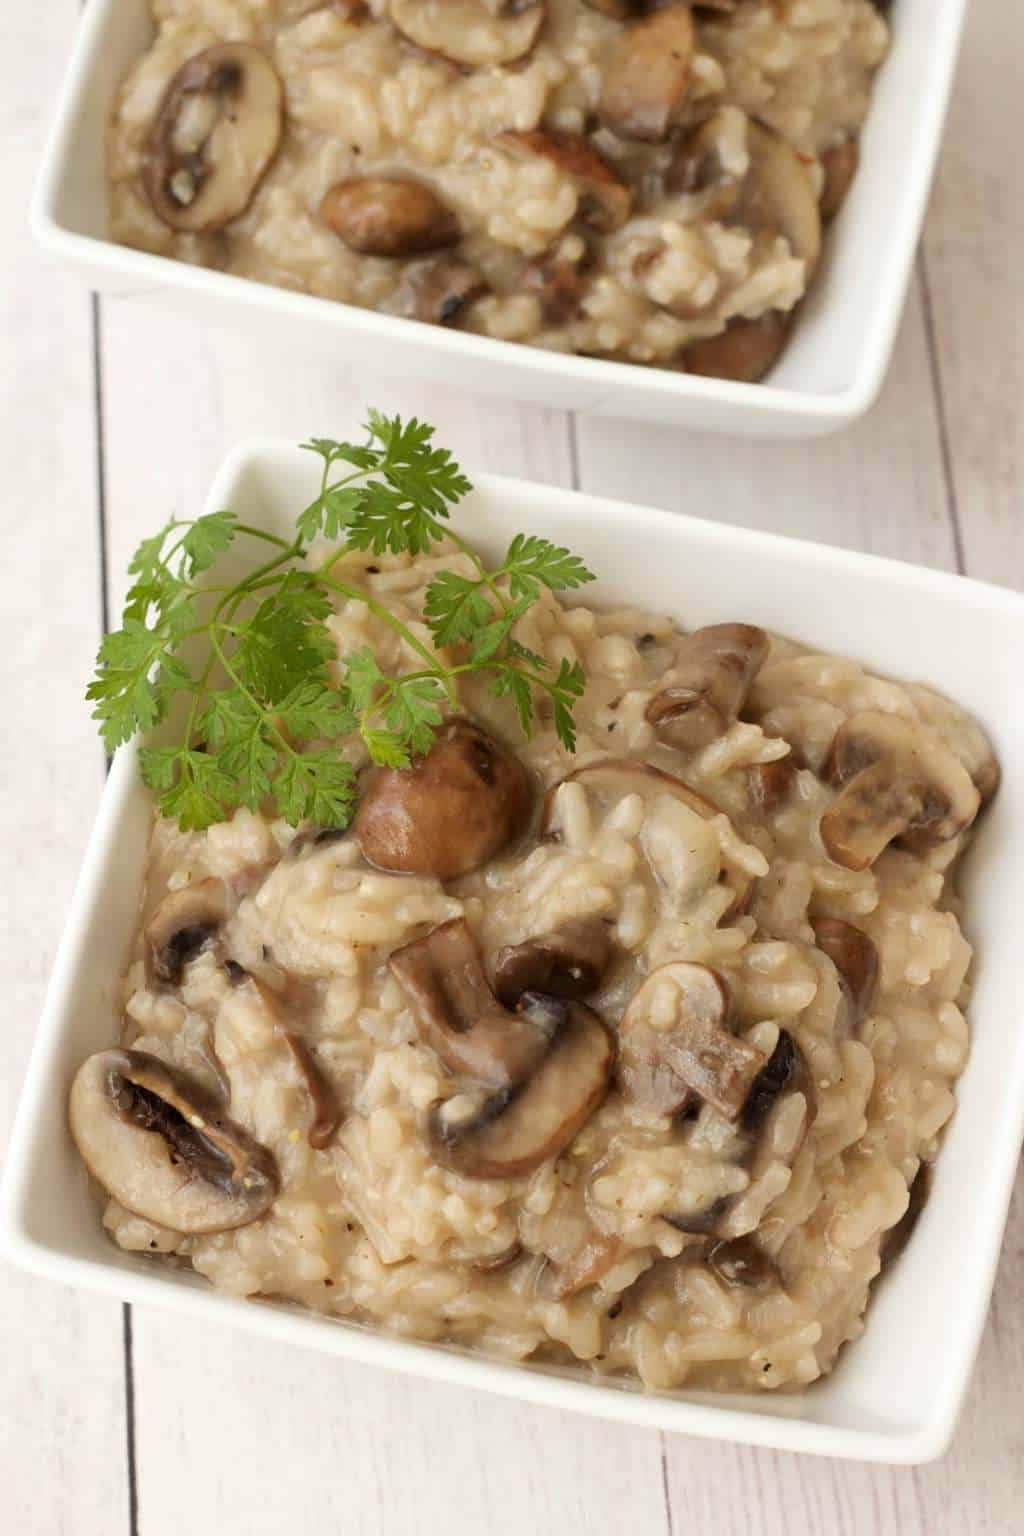 Vegan mushroom risotto topped with fresh parsley in white bowls.